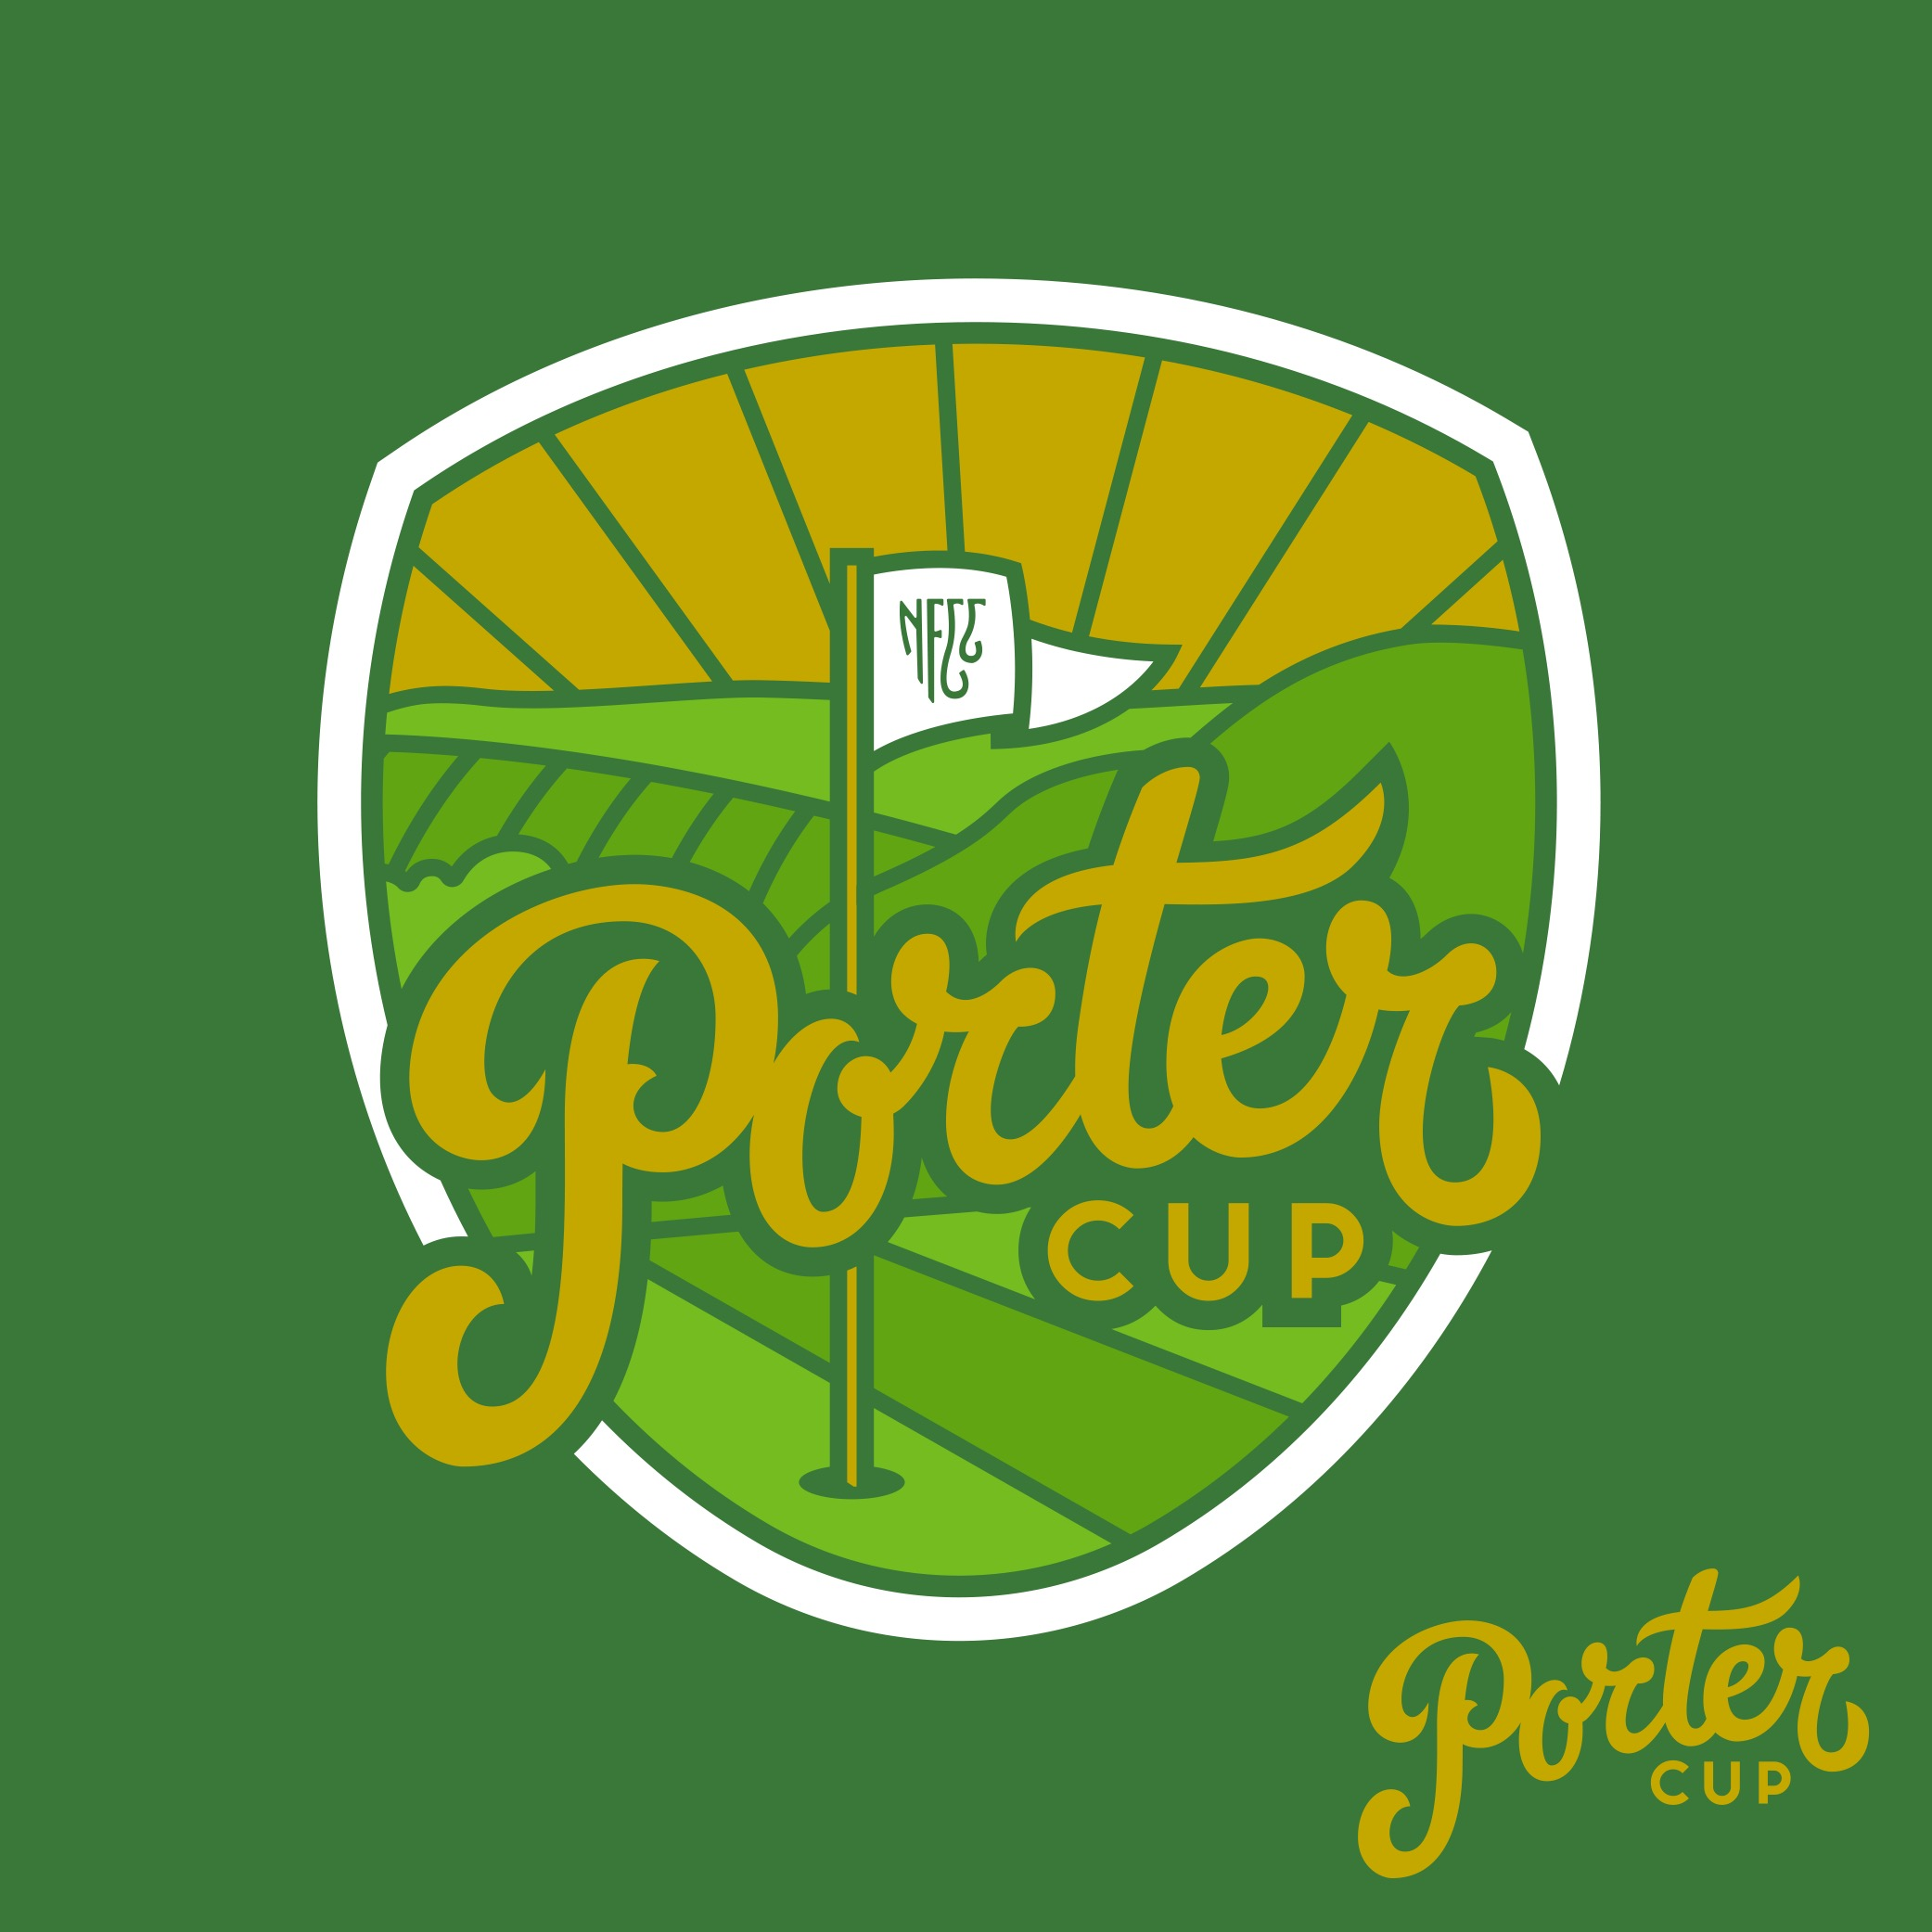 26Shirts.com Porter Cup Limited Edition Anniversary T-Shirt